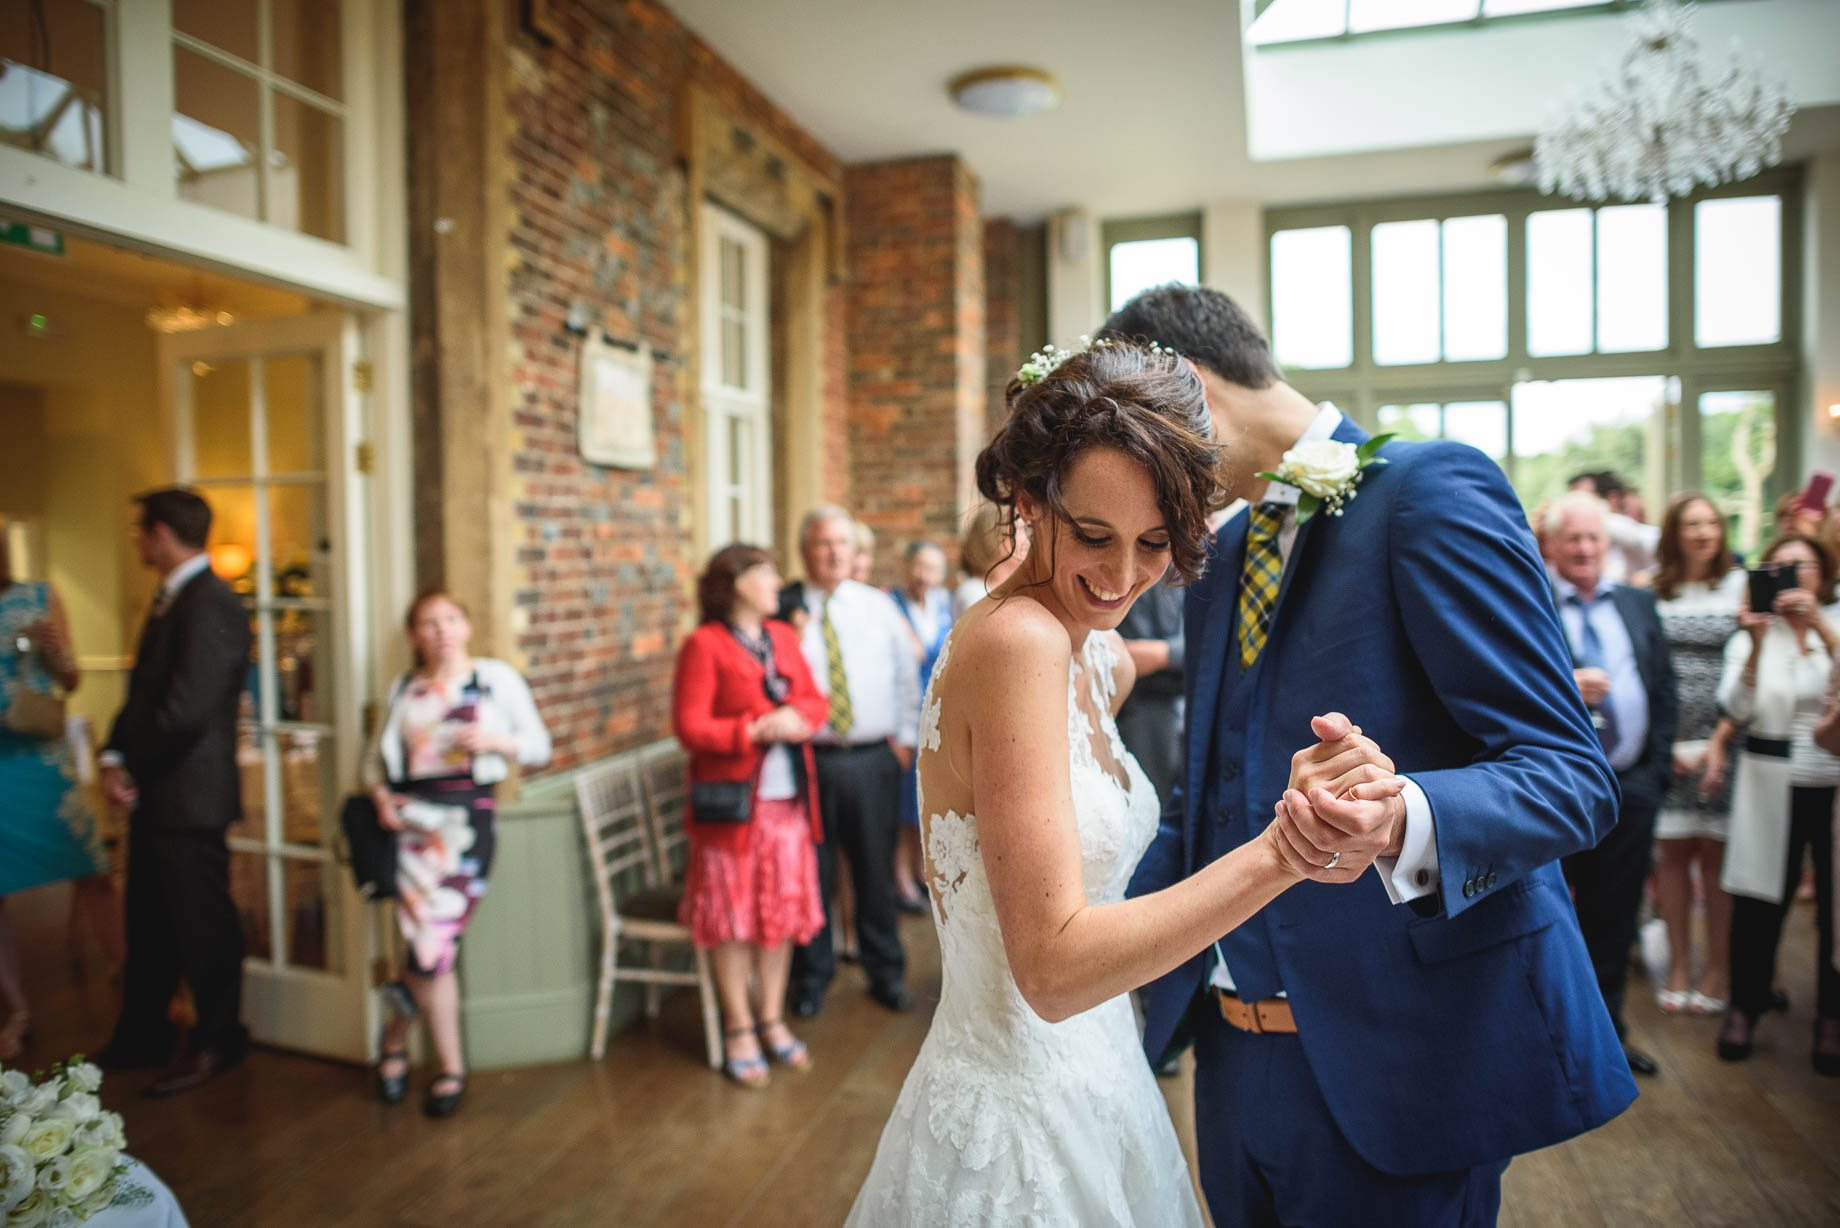 Hertfordshire wedding photography - Sarah and Stephen by Guy Collier Photography (158 of 161)